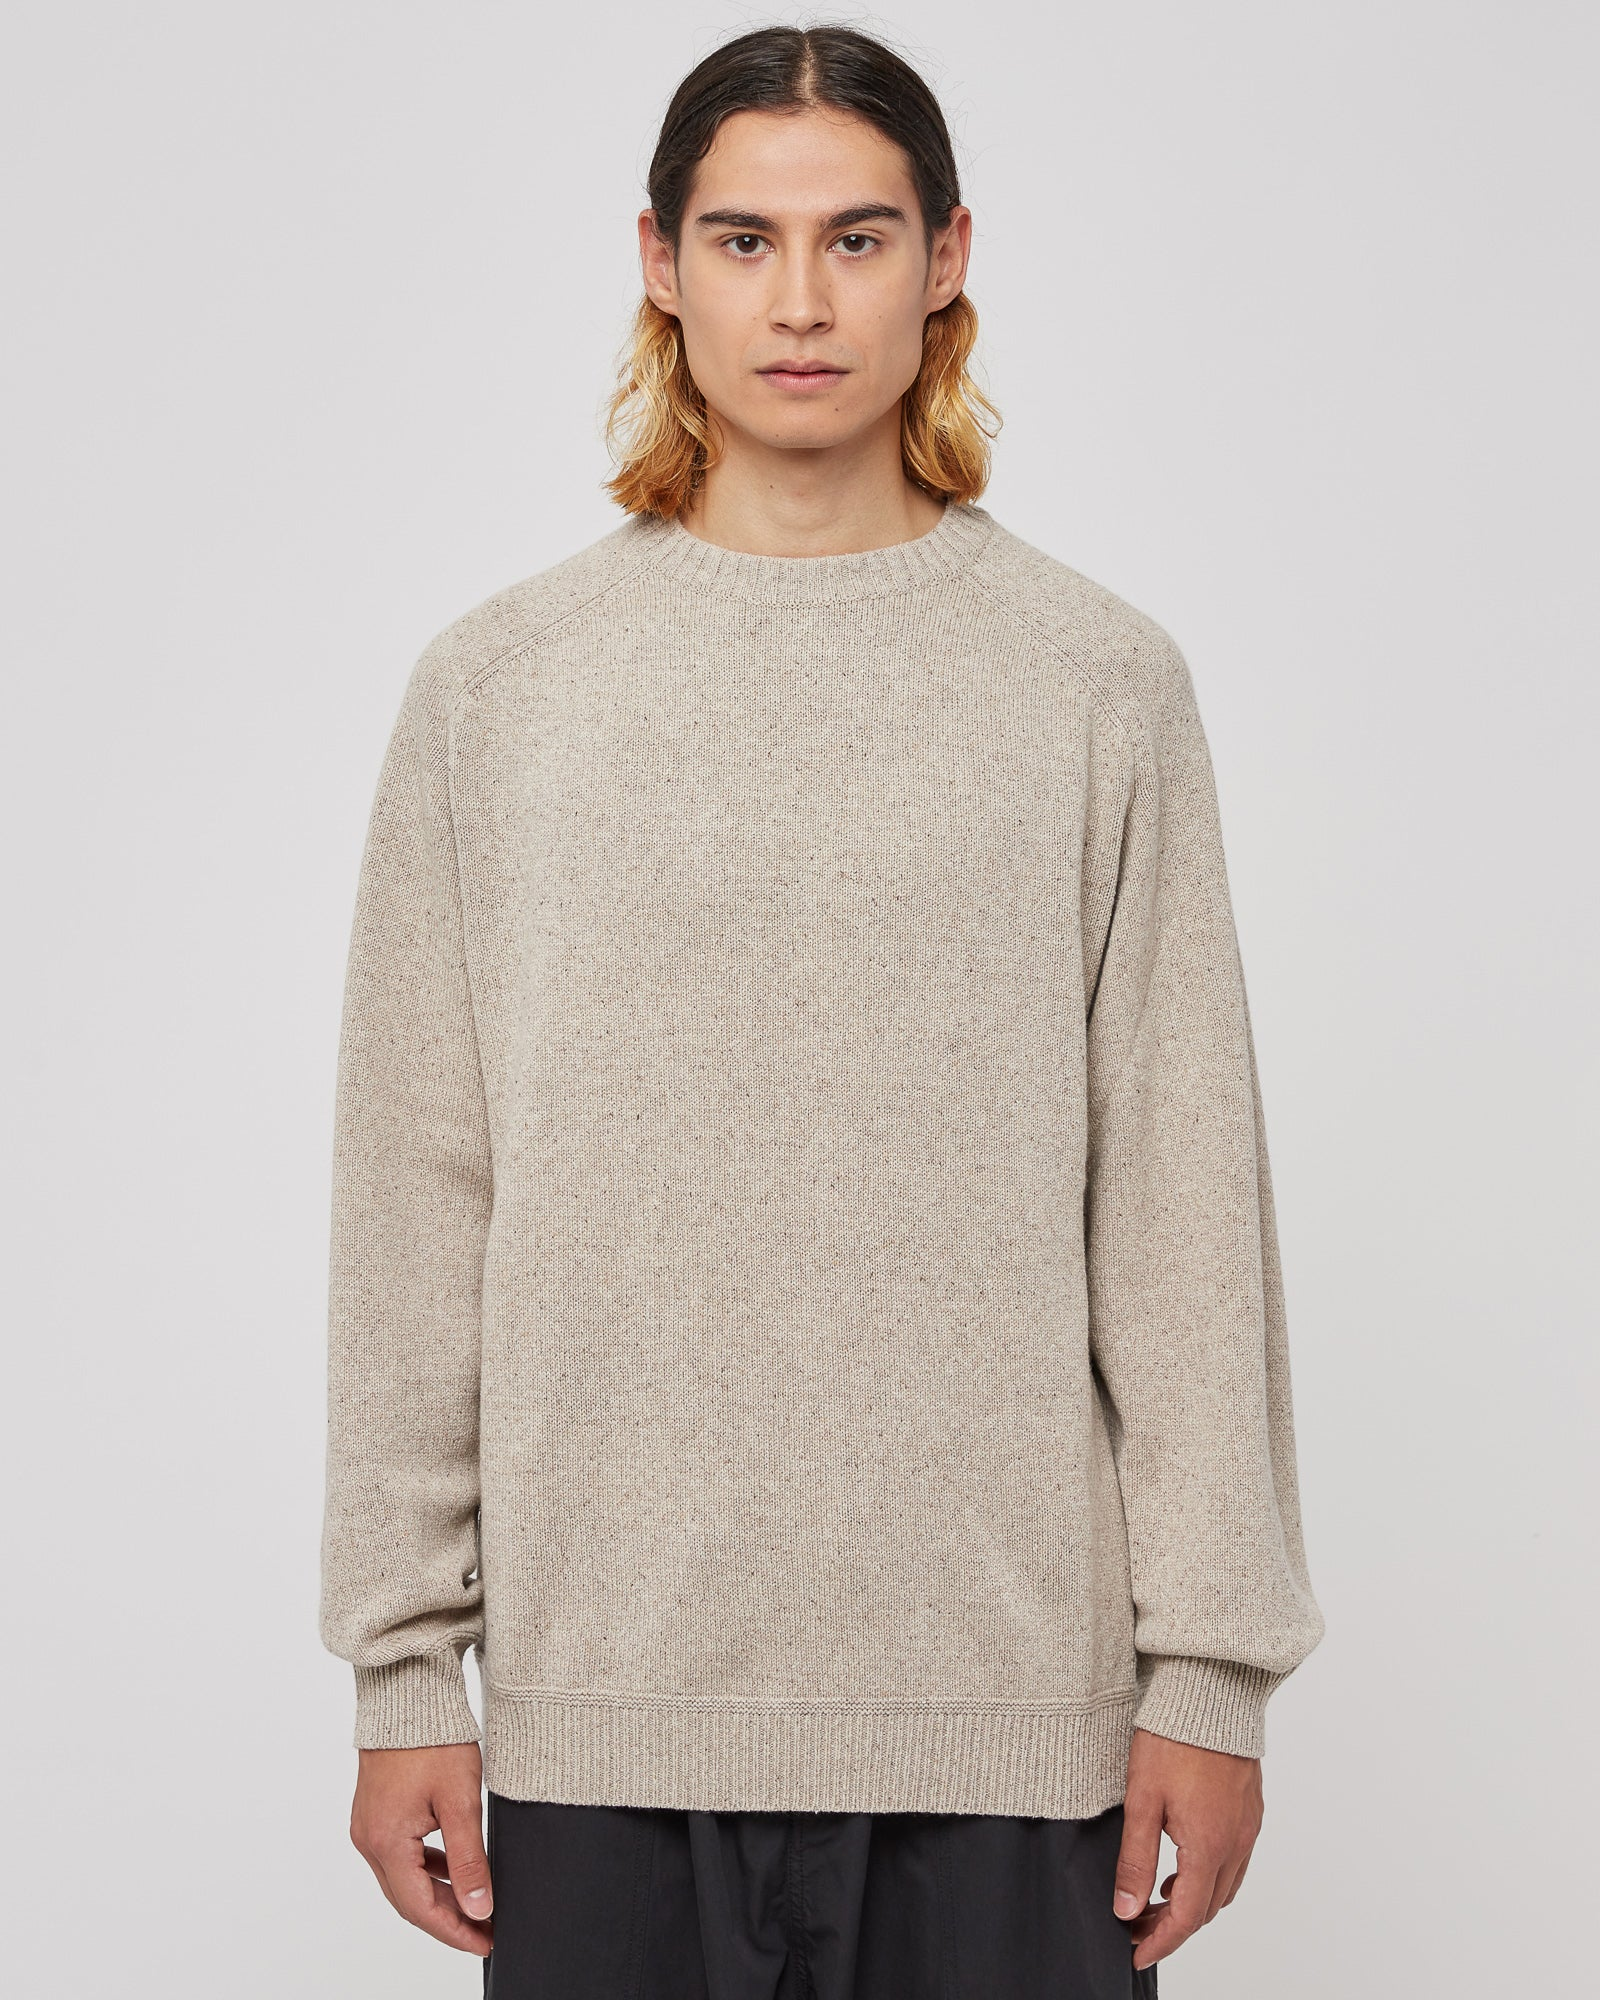 Saddle Sleeve Nepped Knit Sweater in Oatmeal